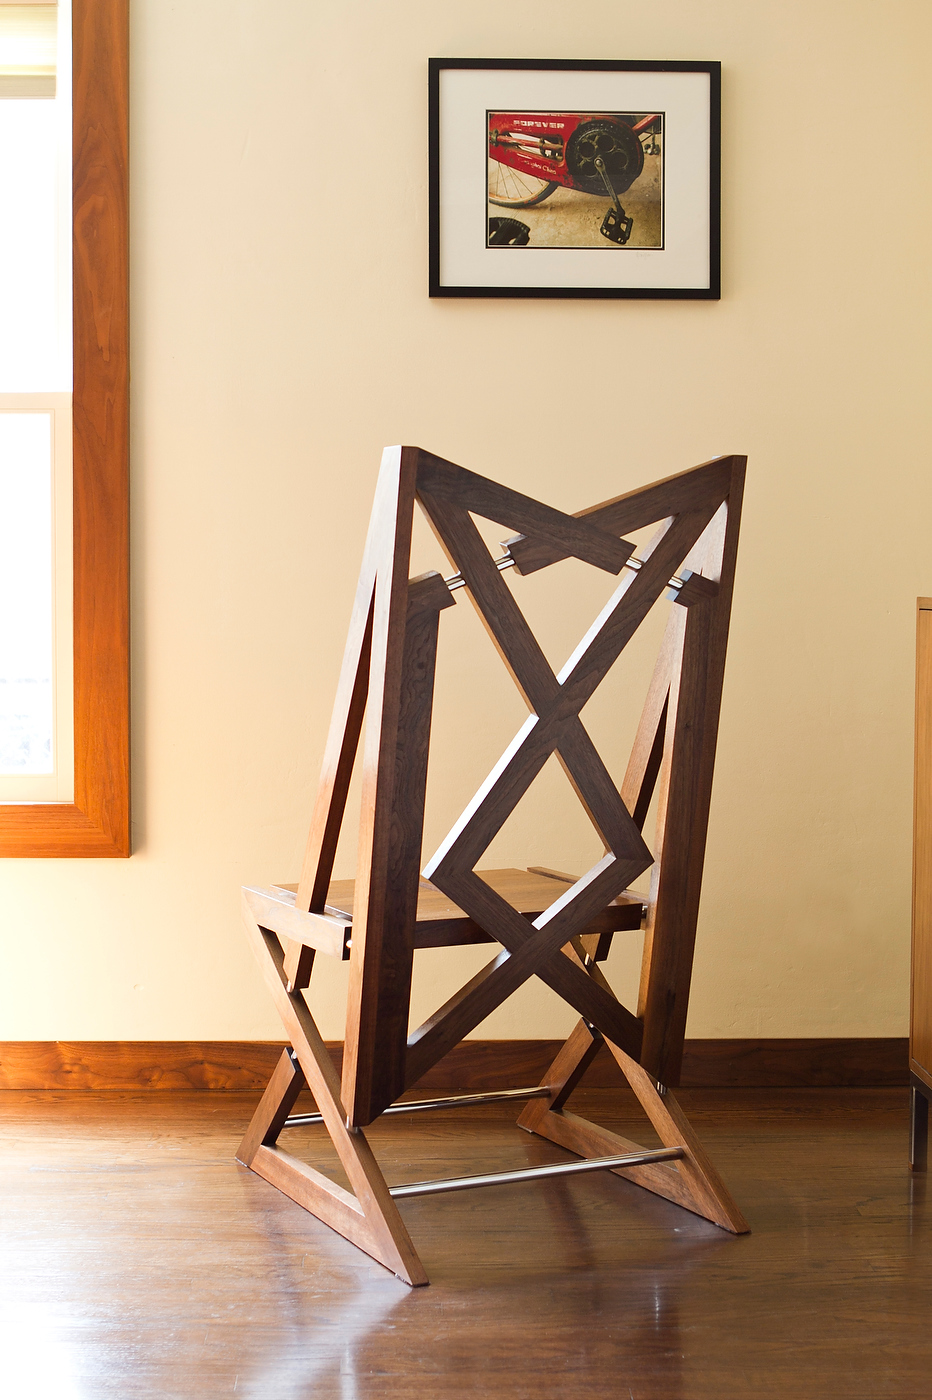 furniture-chair-thing-04.jpg